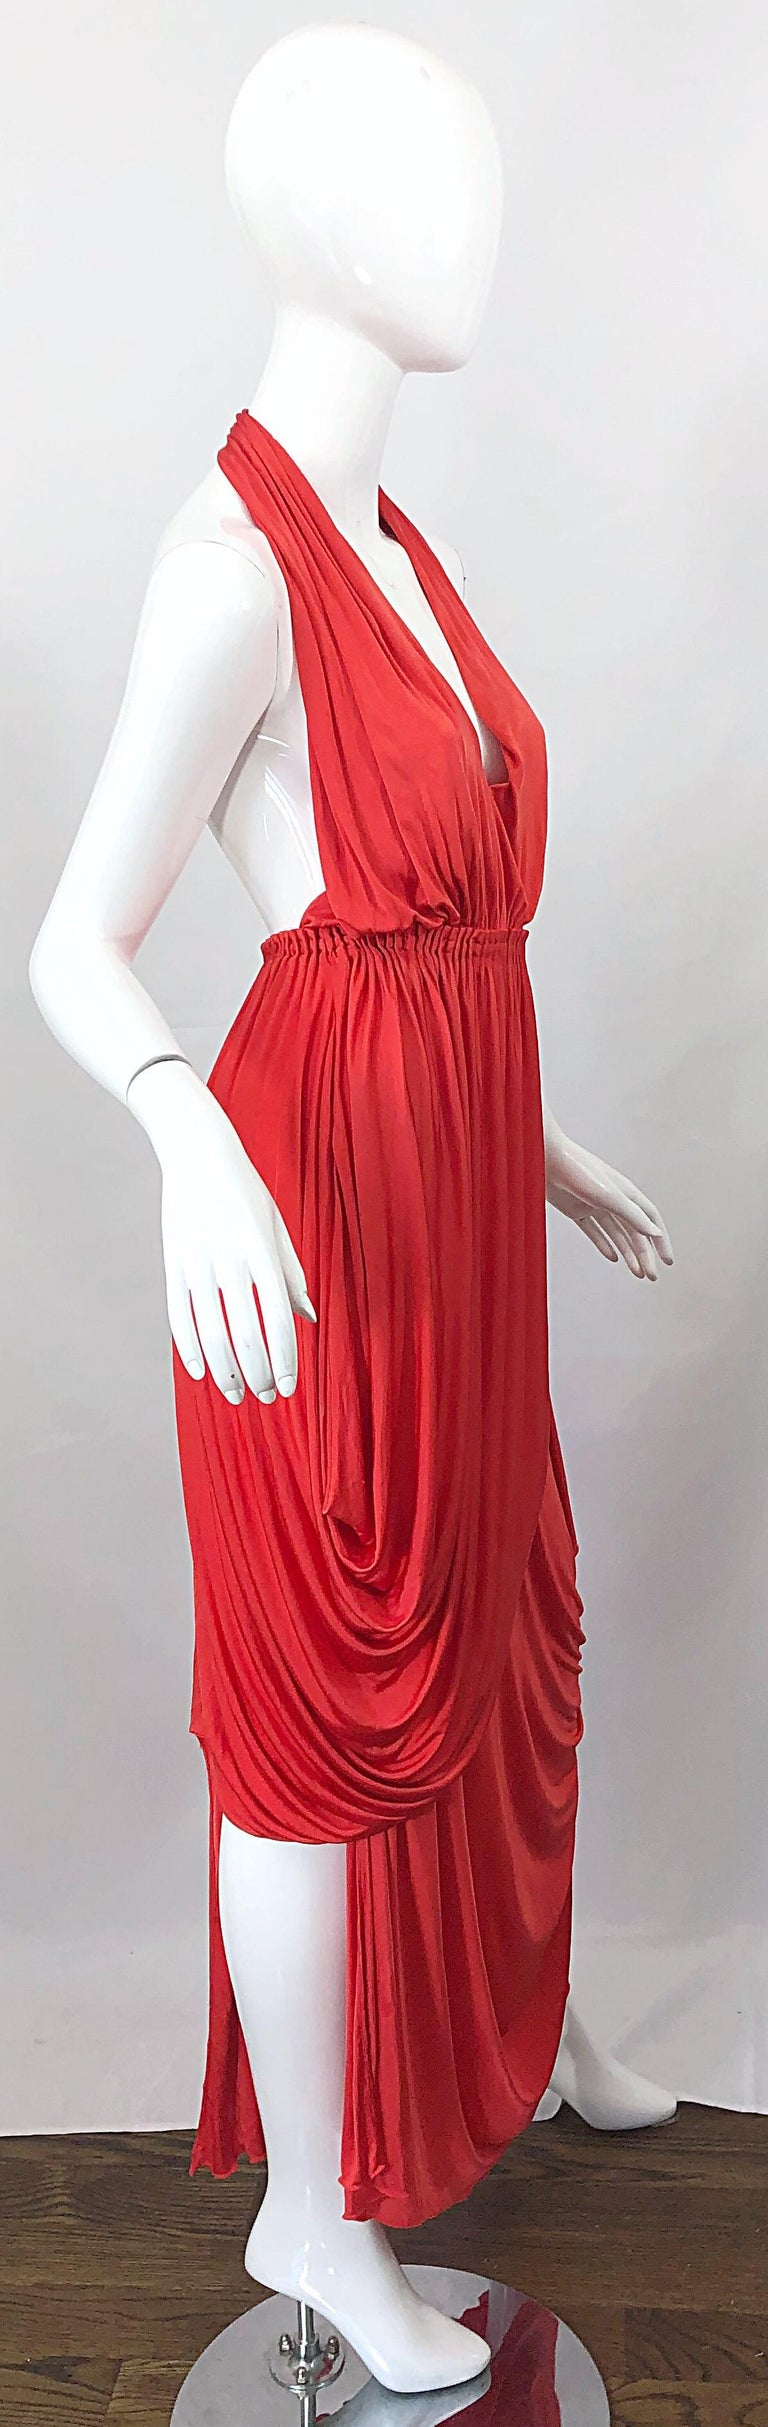 Vintage Halston Coral Silk Jersey Plunging Asymmetrical Hem Backless Gown Dress In Excellent Condition For Sale In Chicago, IL